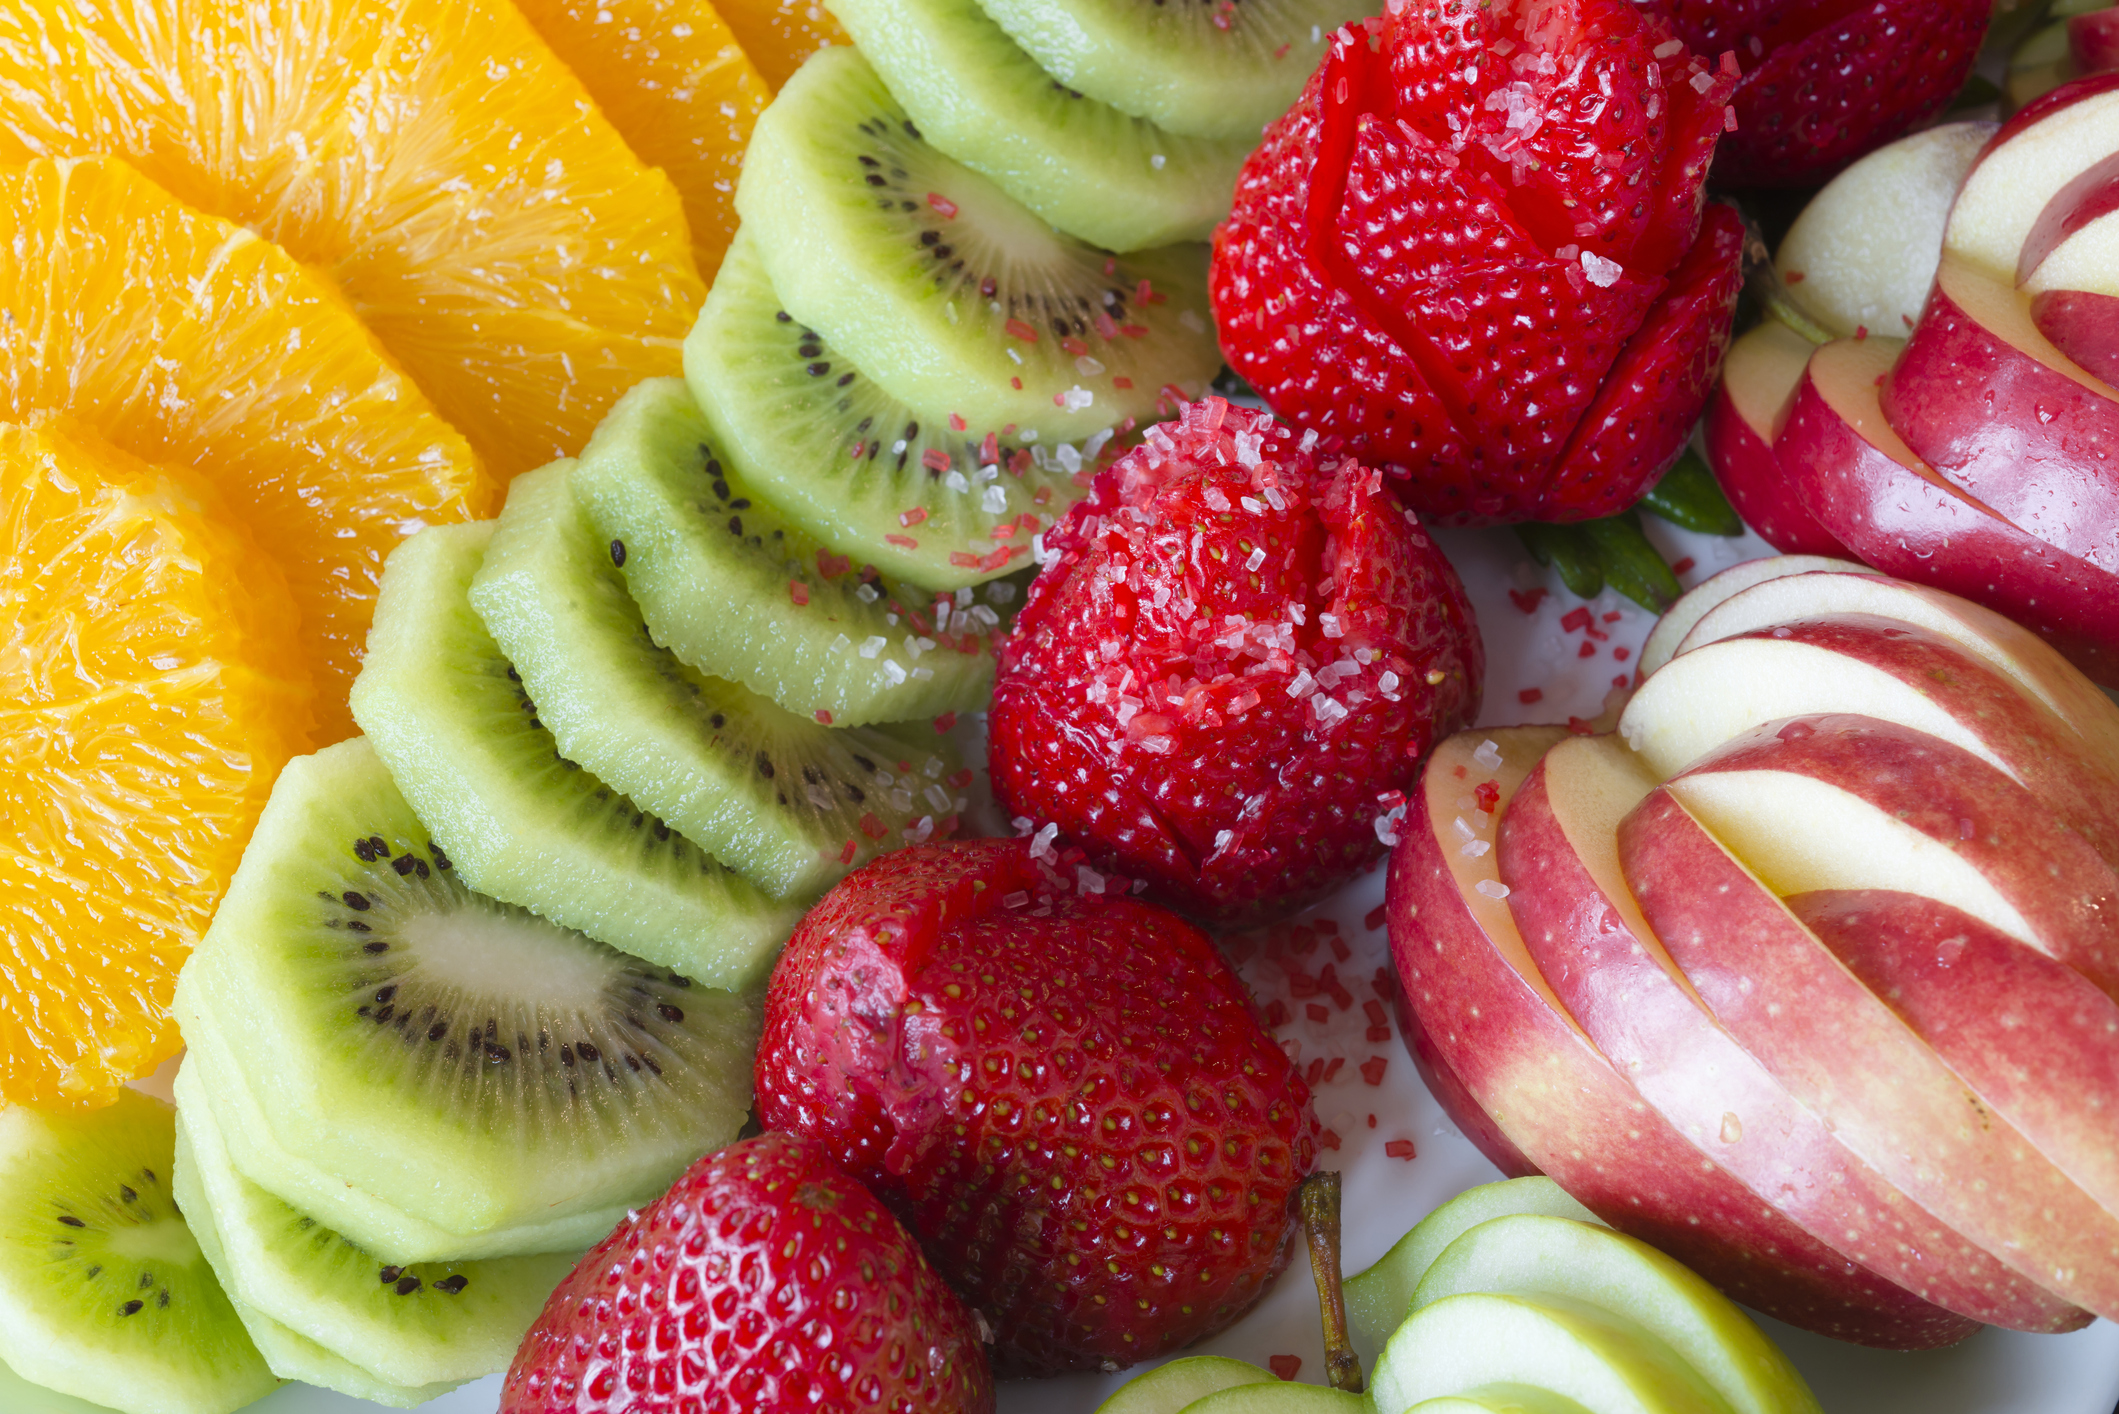 Pack along sliced fruit! (Image source: iStock)